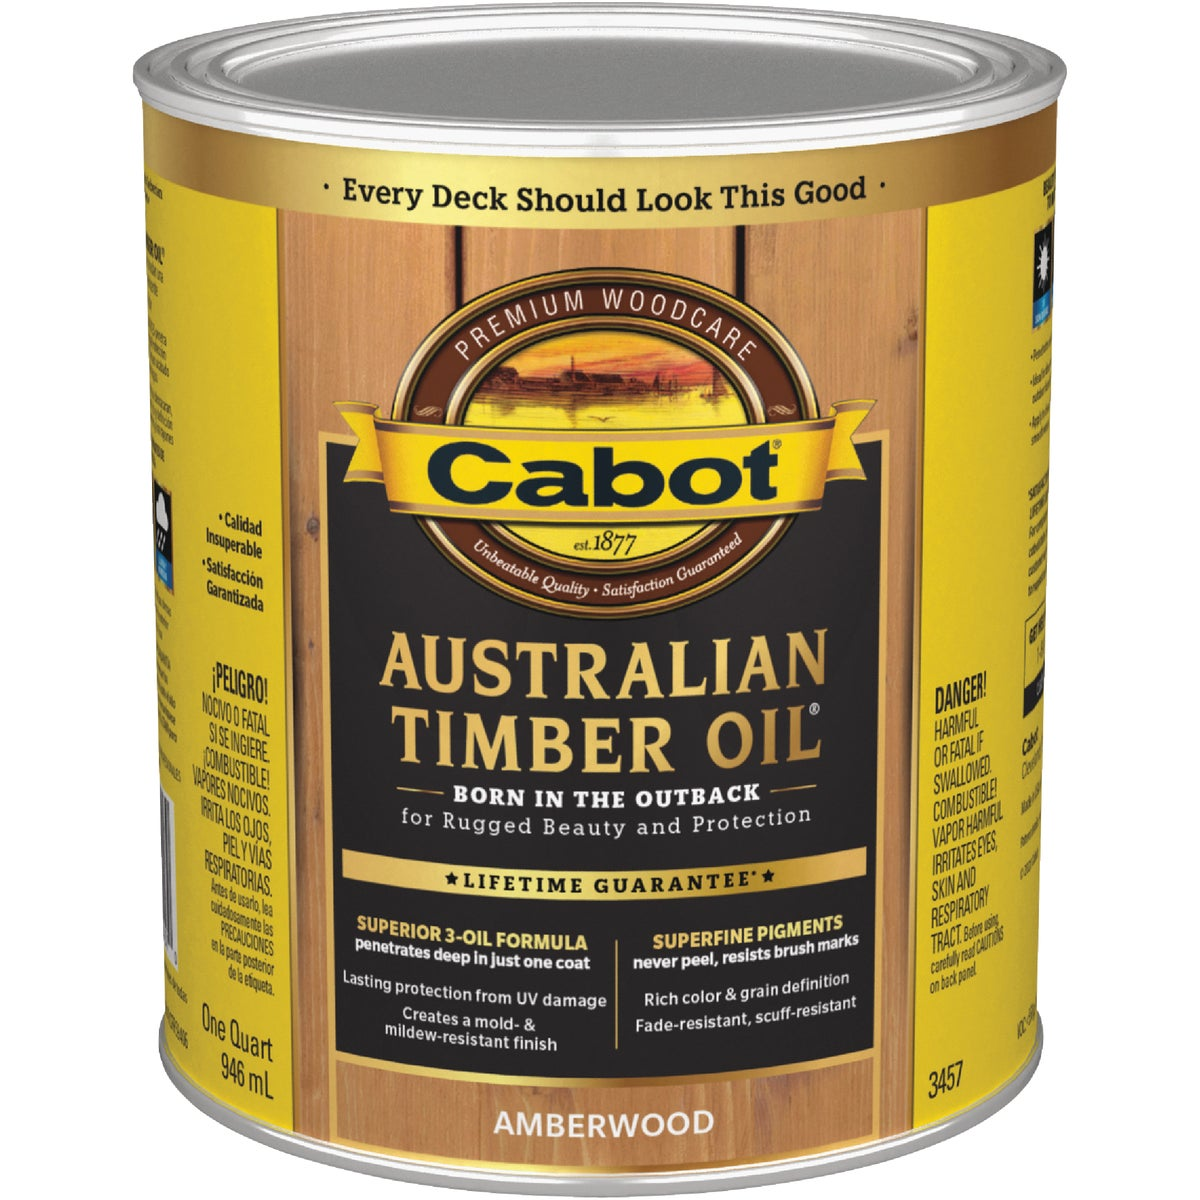 Cabot 04-3457 Australian Timber Oil Penetrating formula, 1 quart, Amberwood